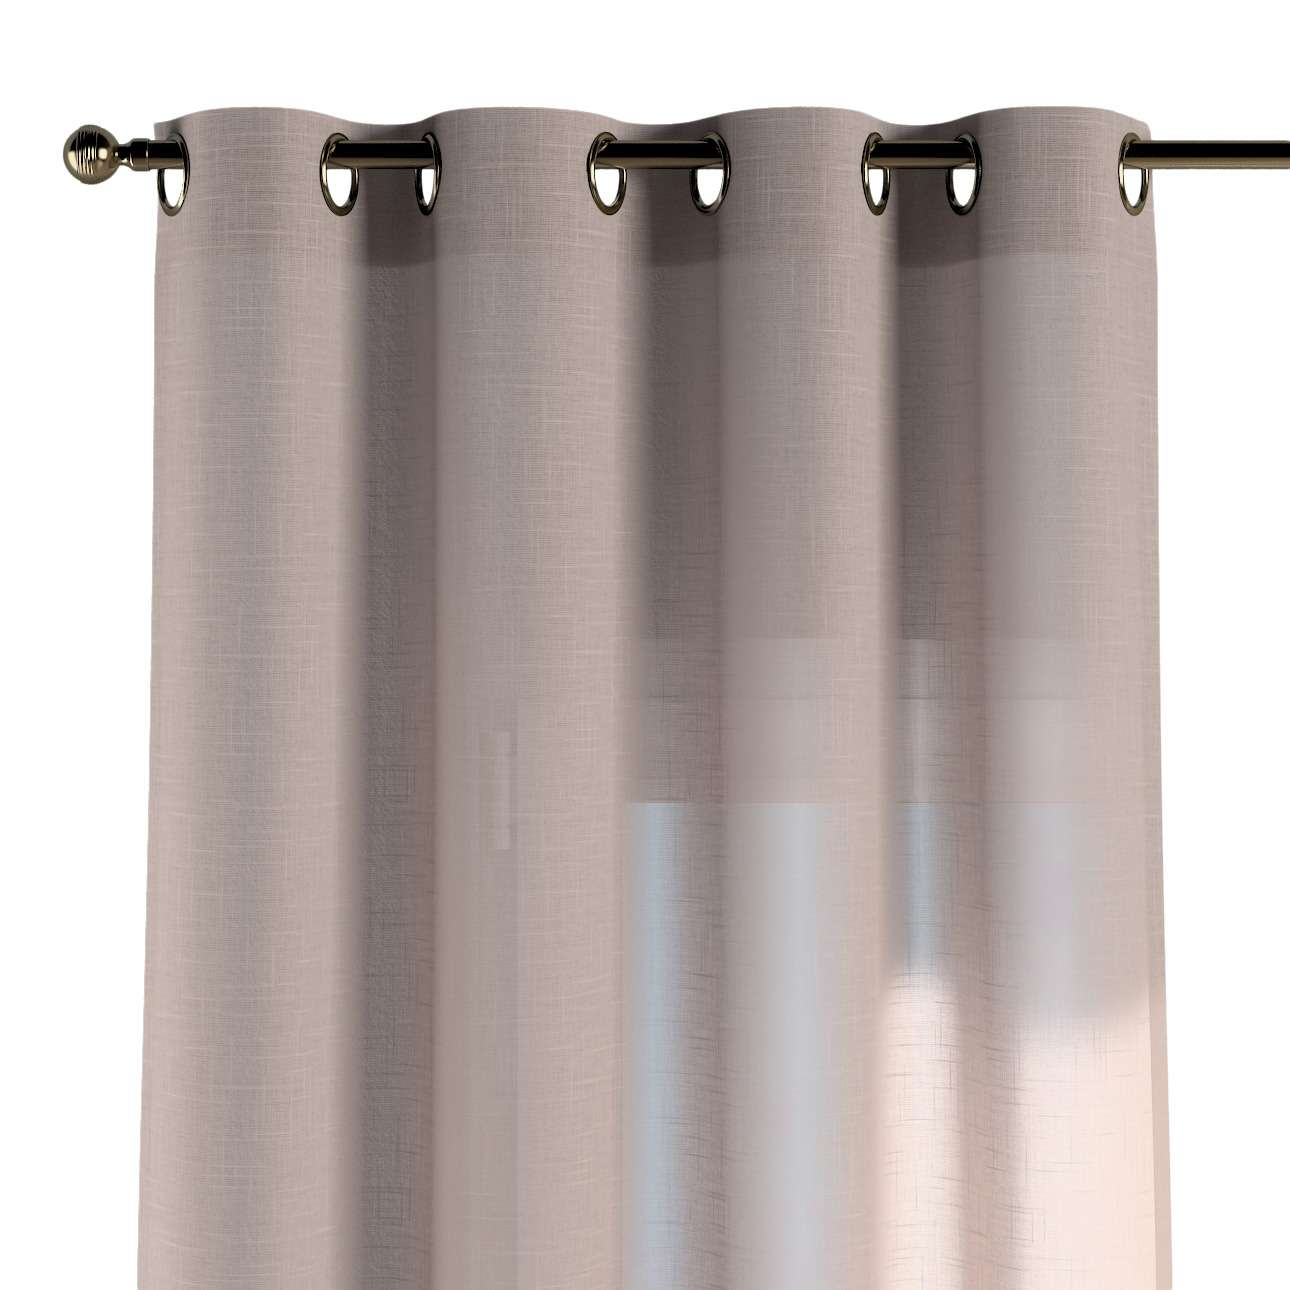 Eyelet curtains in collection Sweet Secret, fabric: 142-89